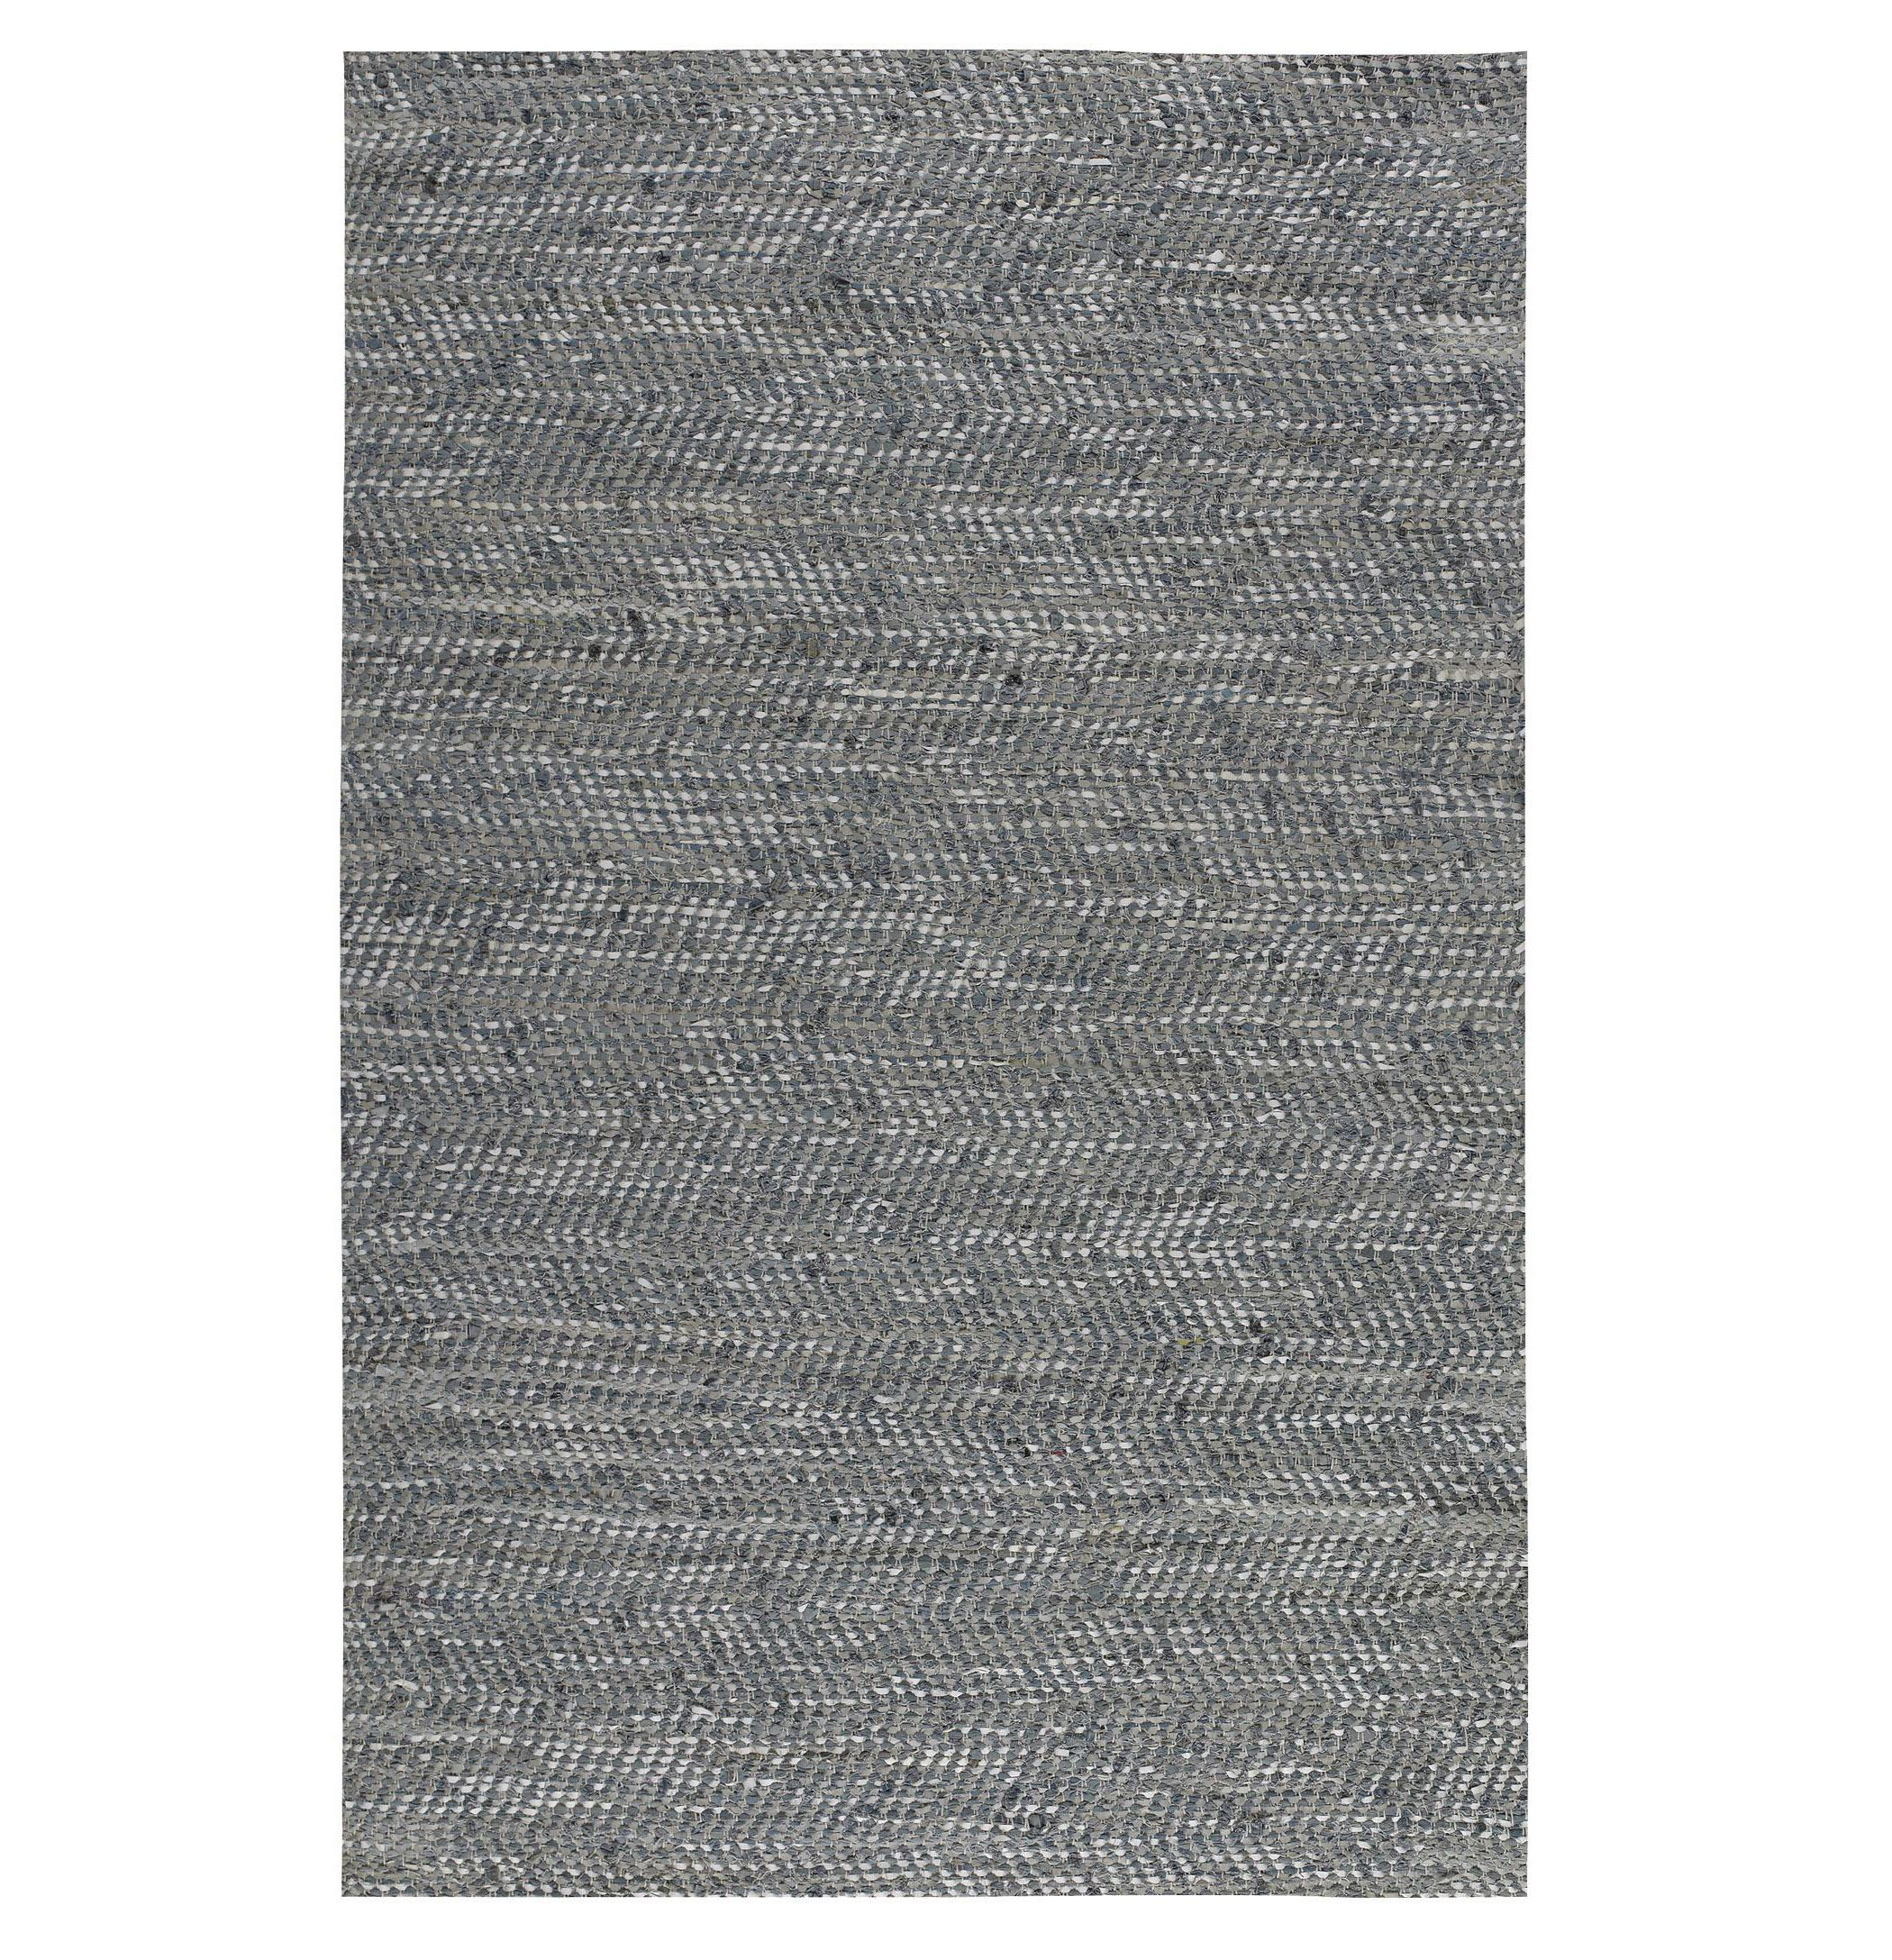 Uttermost Rugs Branson 8 X 10 Woven Rug - Gray Blue - Item Number: 71038-8